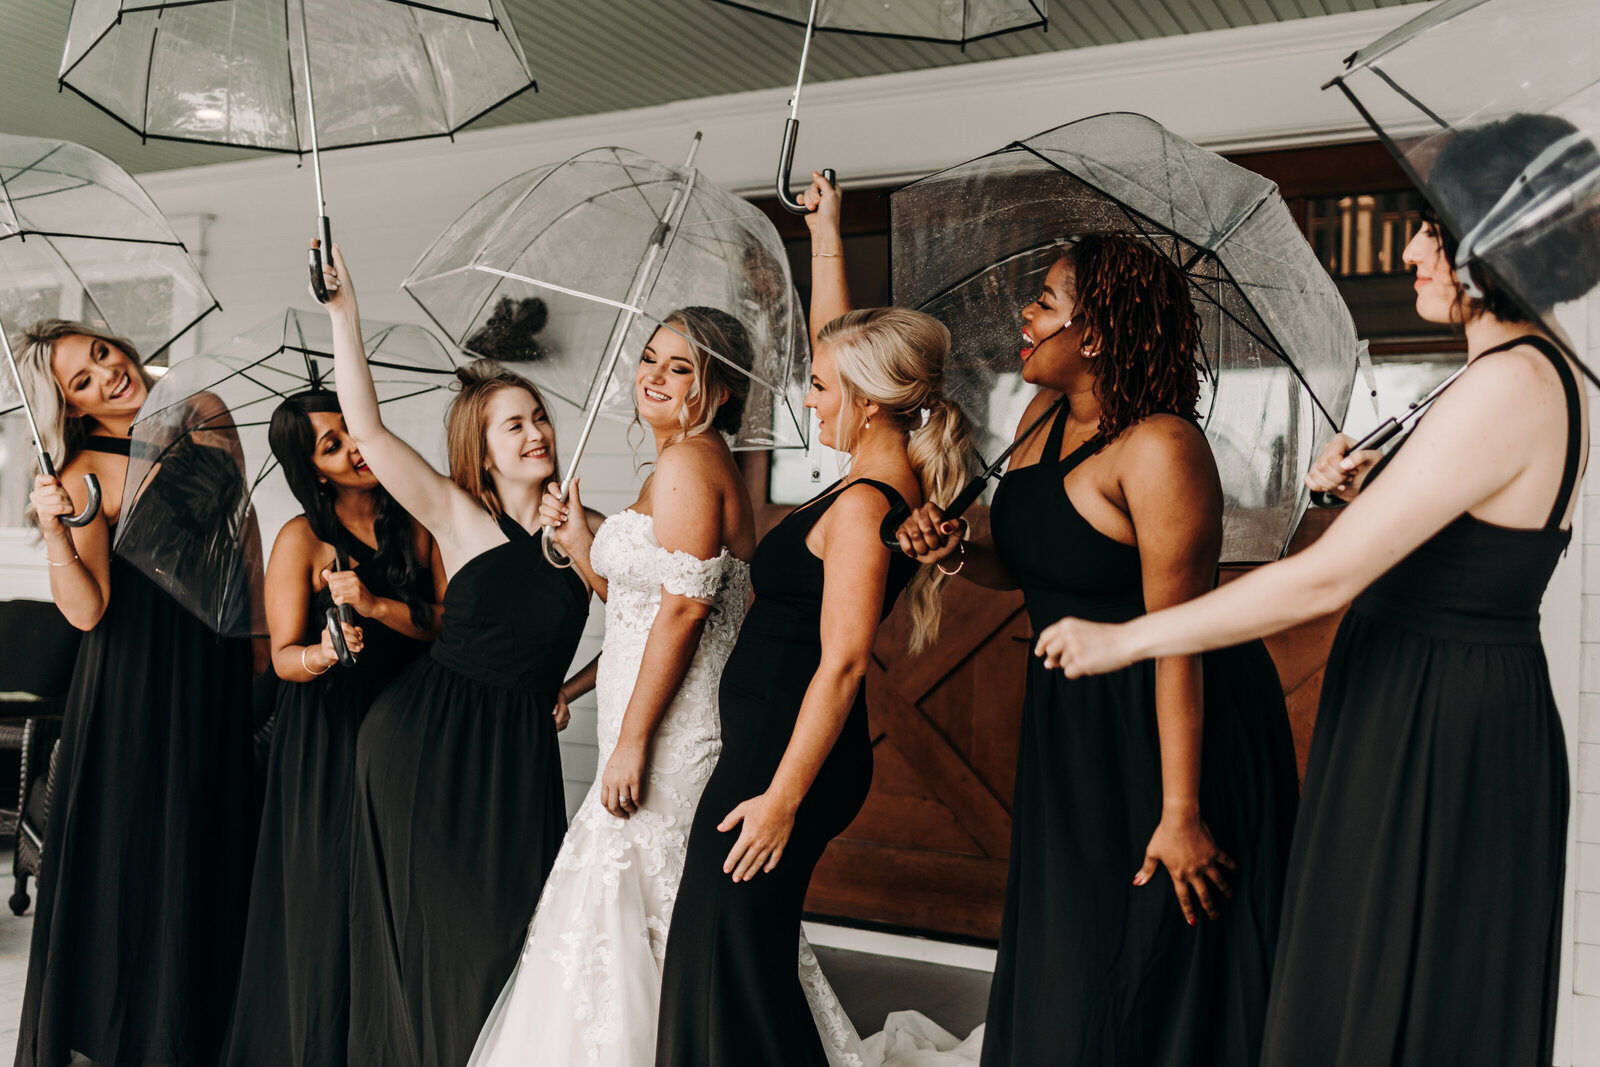 Bride  with wedding party at White Oak Road wedding venue in Appling, Ga